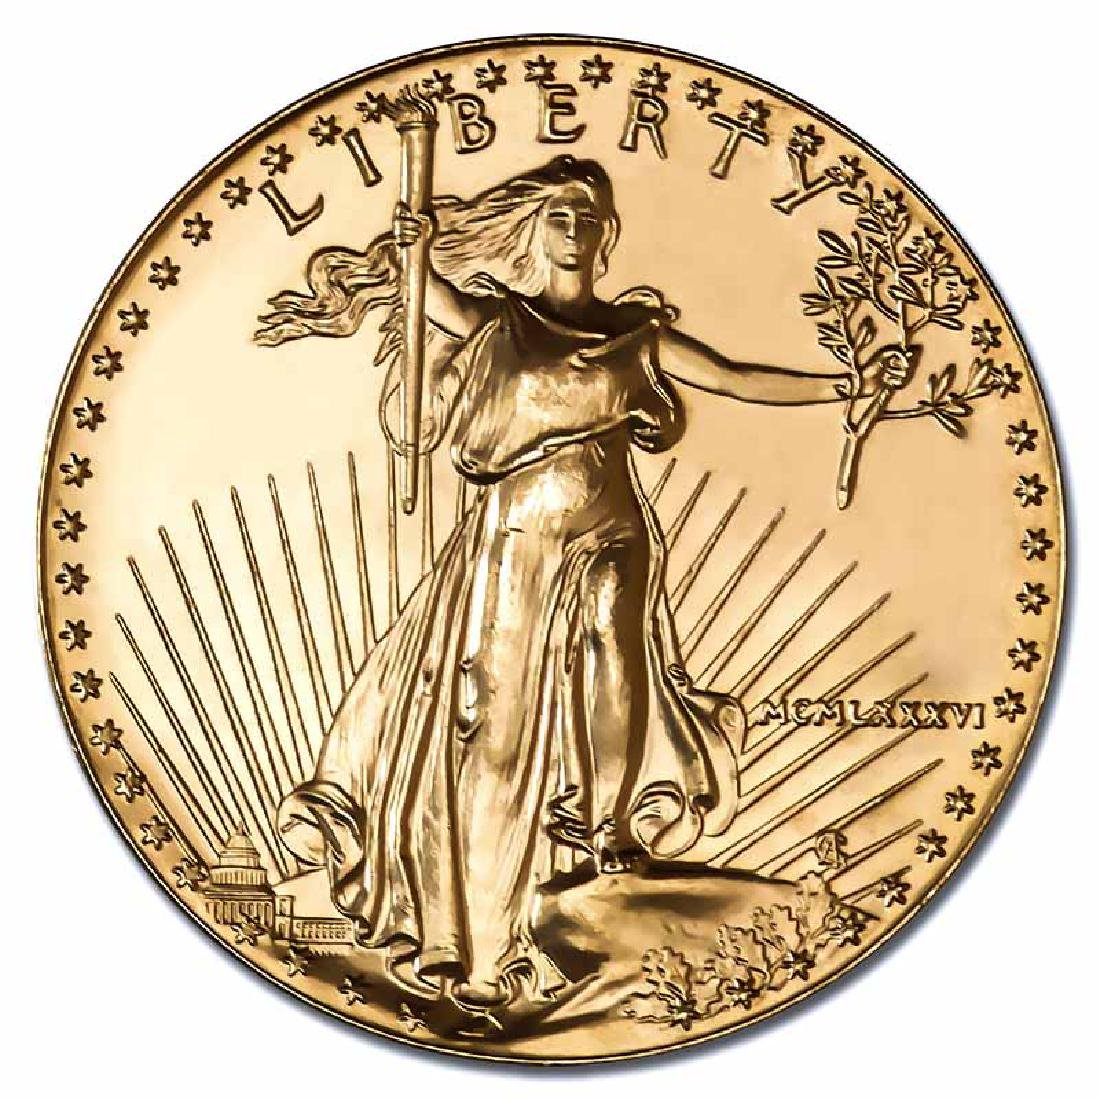 1986 American Gold Eagle 1 oz Uncirculated